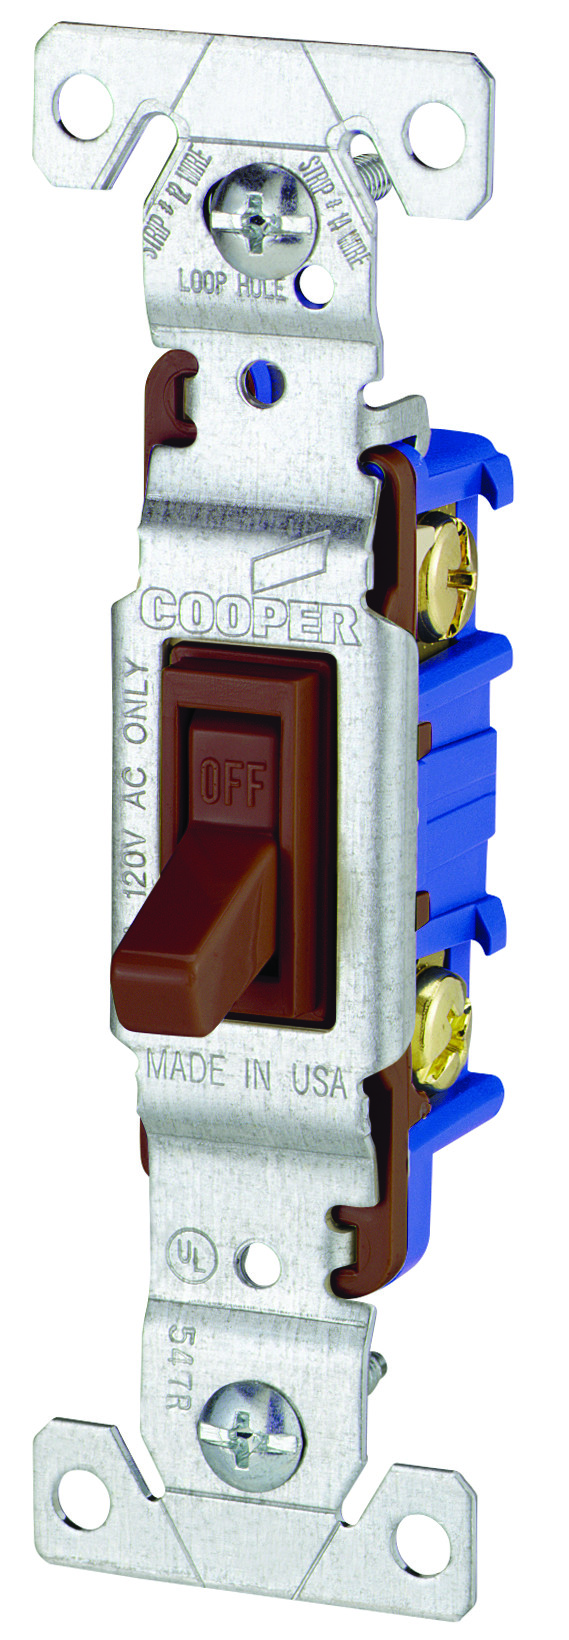 Eaton Cooper Wiring 1301b Toggle Switch Quiet 1 Pole Non Grounding Single Lighted 15 A 120 V Ivory Brown Tap To Expand